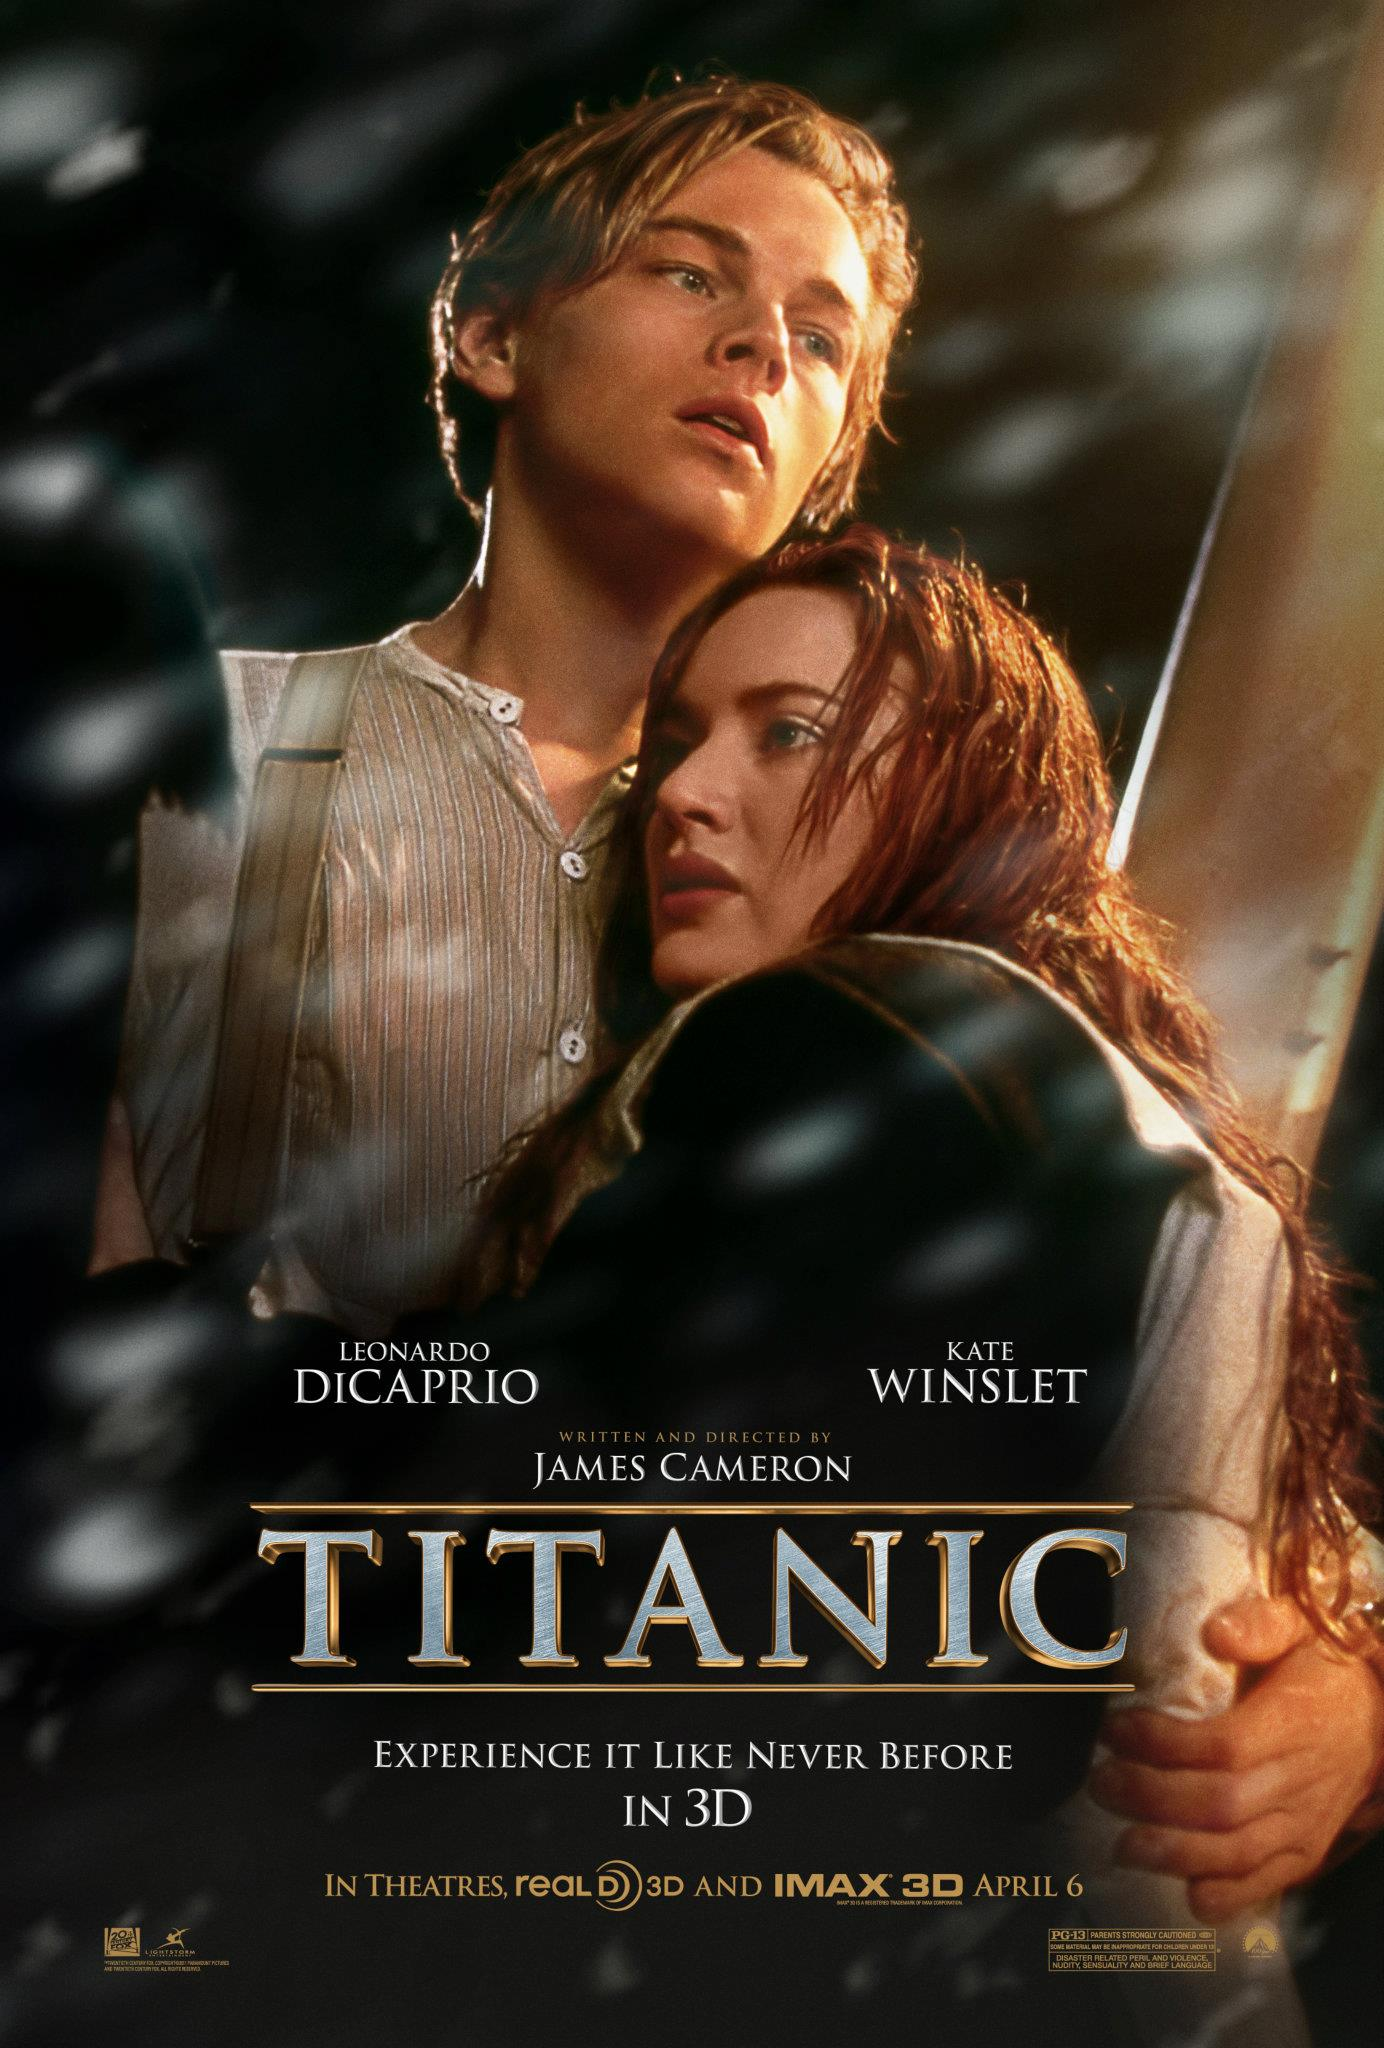 titanic (2012) images posters hd wallpaper and background photos